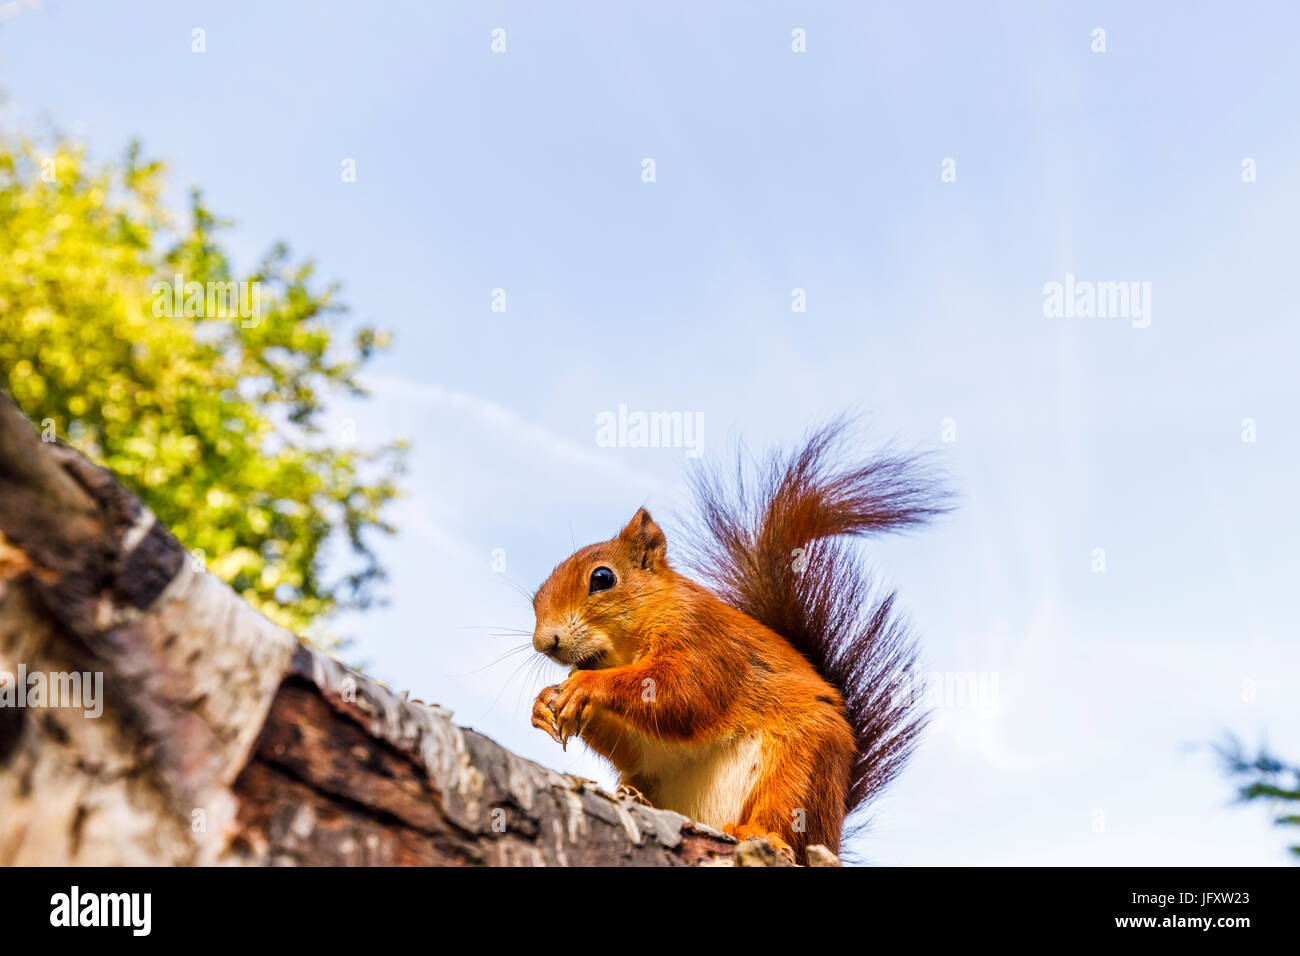 Red Squirrel (Sciurus vulgaris) standing on a log, British Wildlife Centre, Newchapel, Lingfield, Surrey, UK - Stock Image